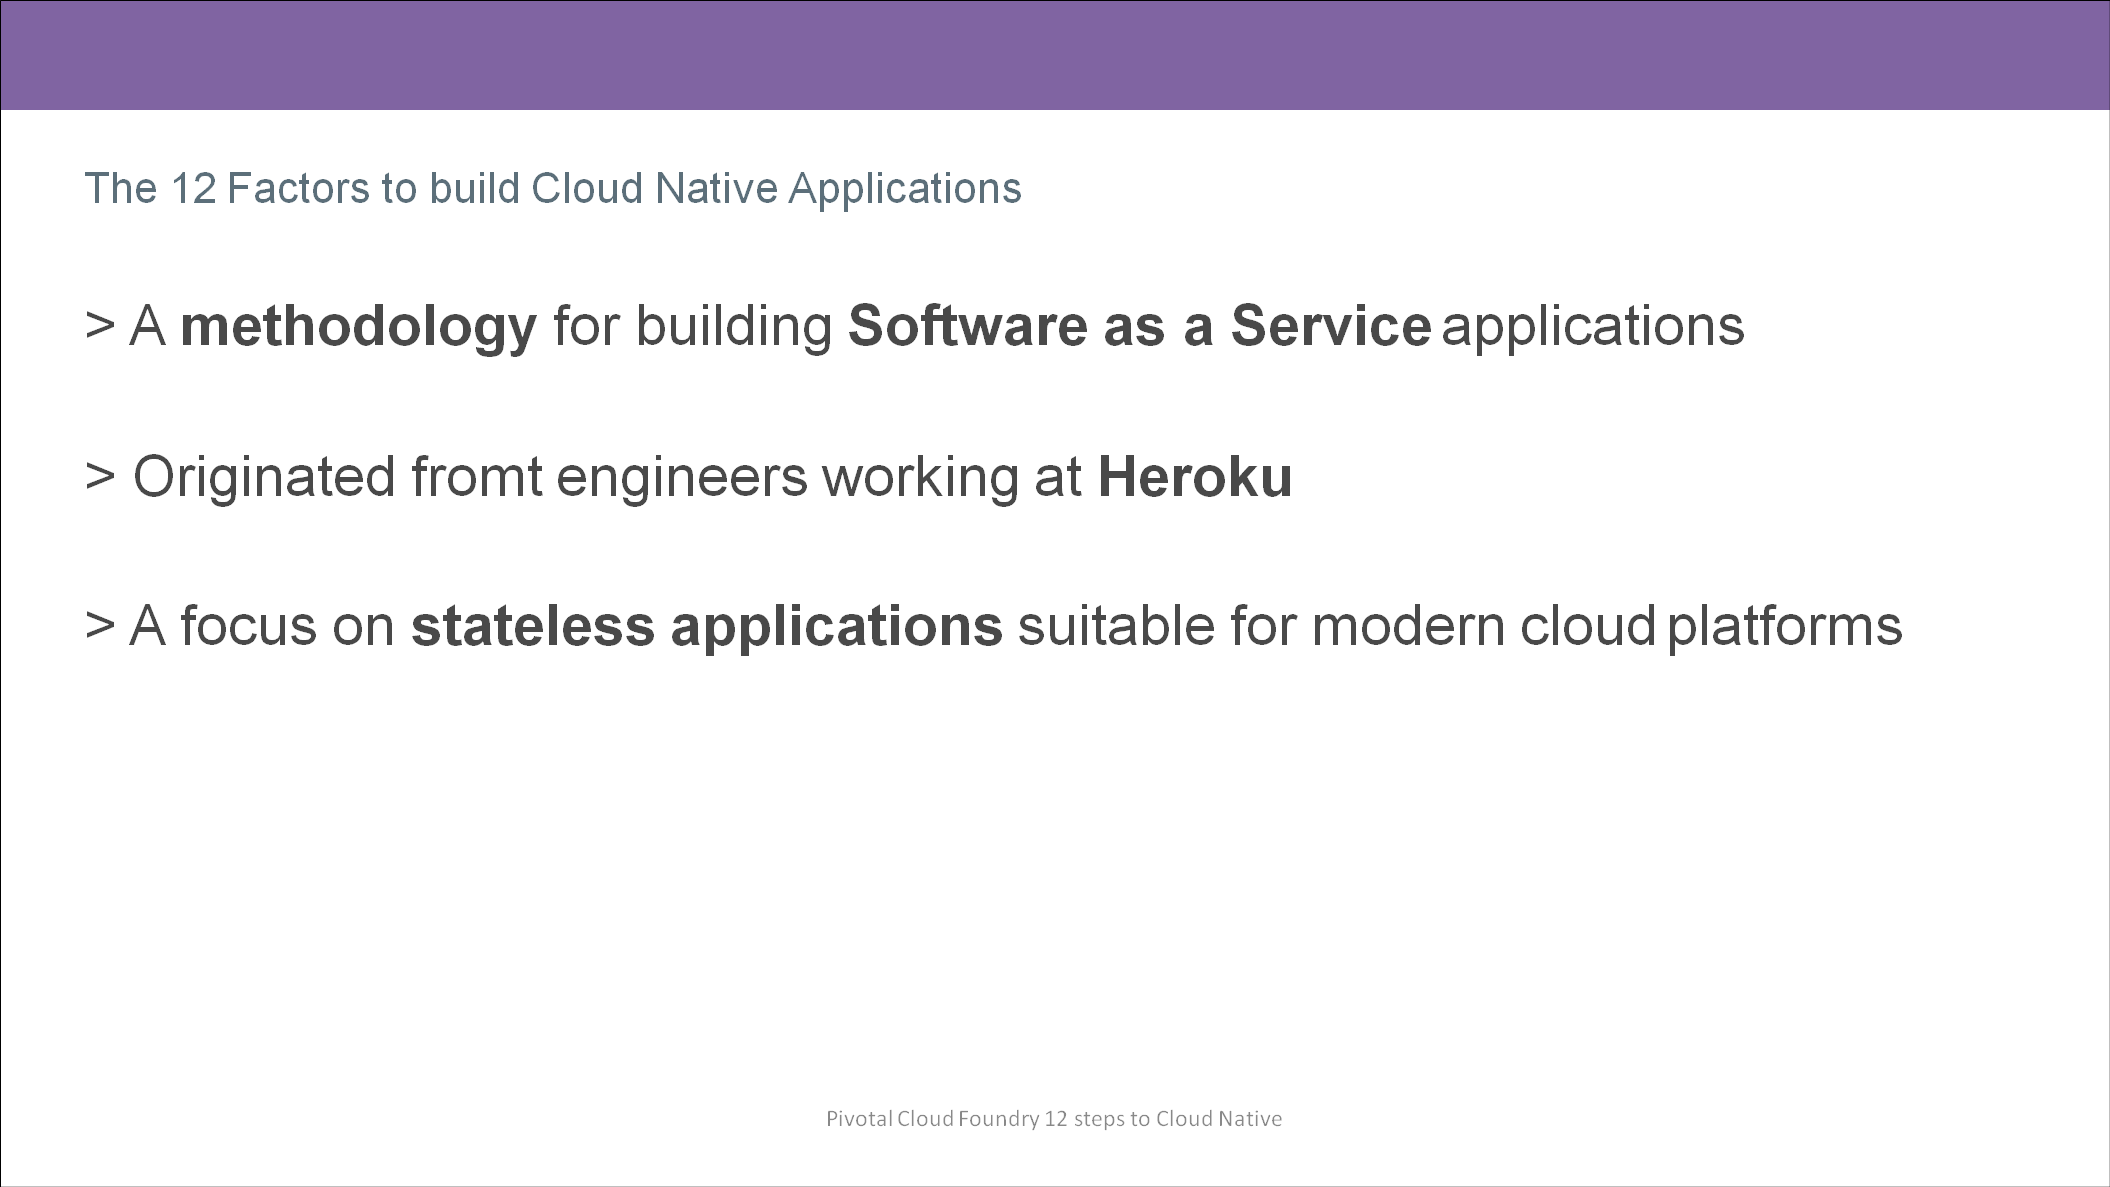 12 Factors to build Cloud Native Applications